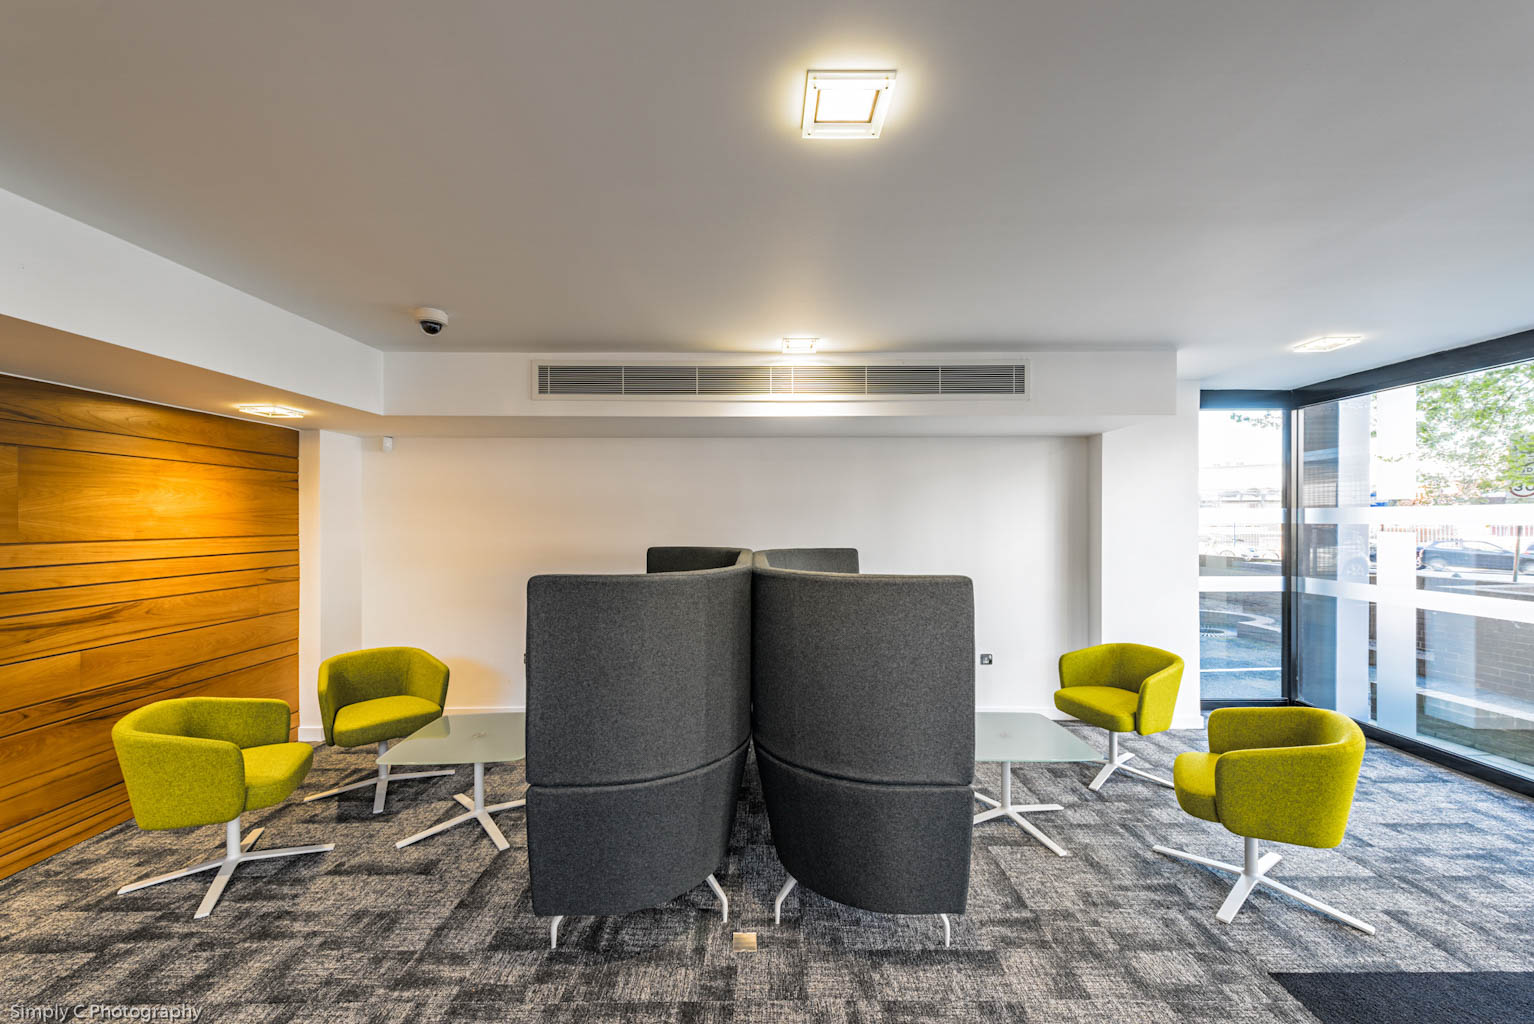 Commercial property interior photography